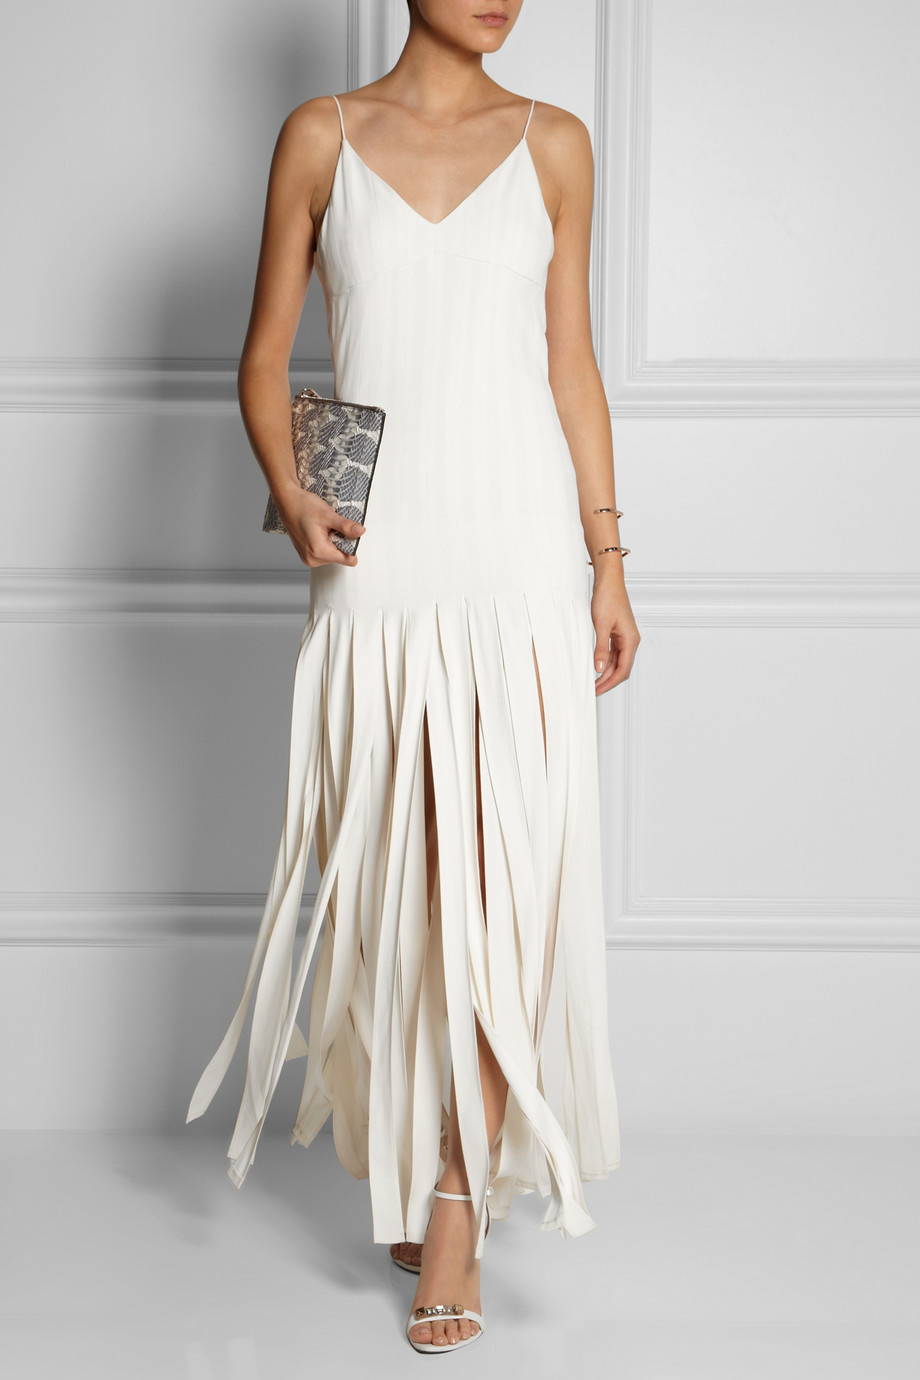 Topshop Fringed Stretchcrepe Maxi Dress In White Lyst